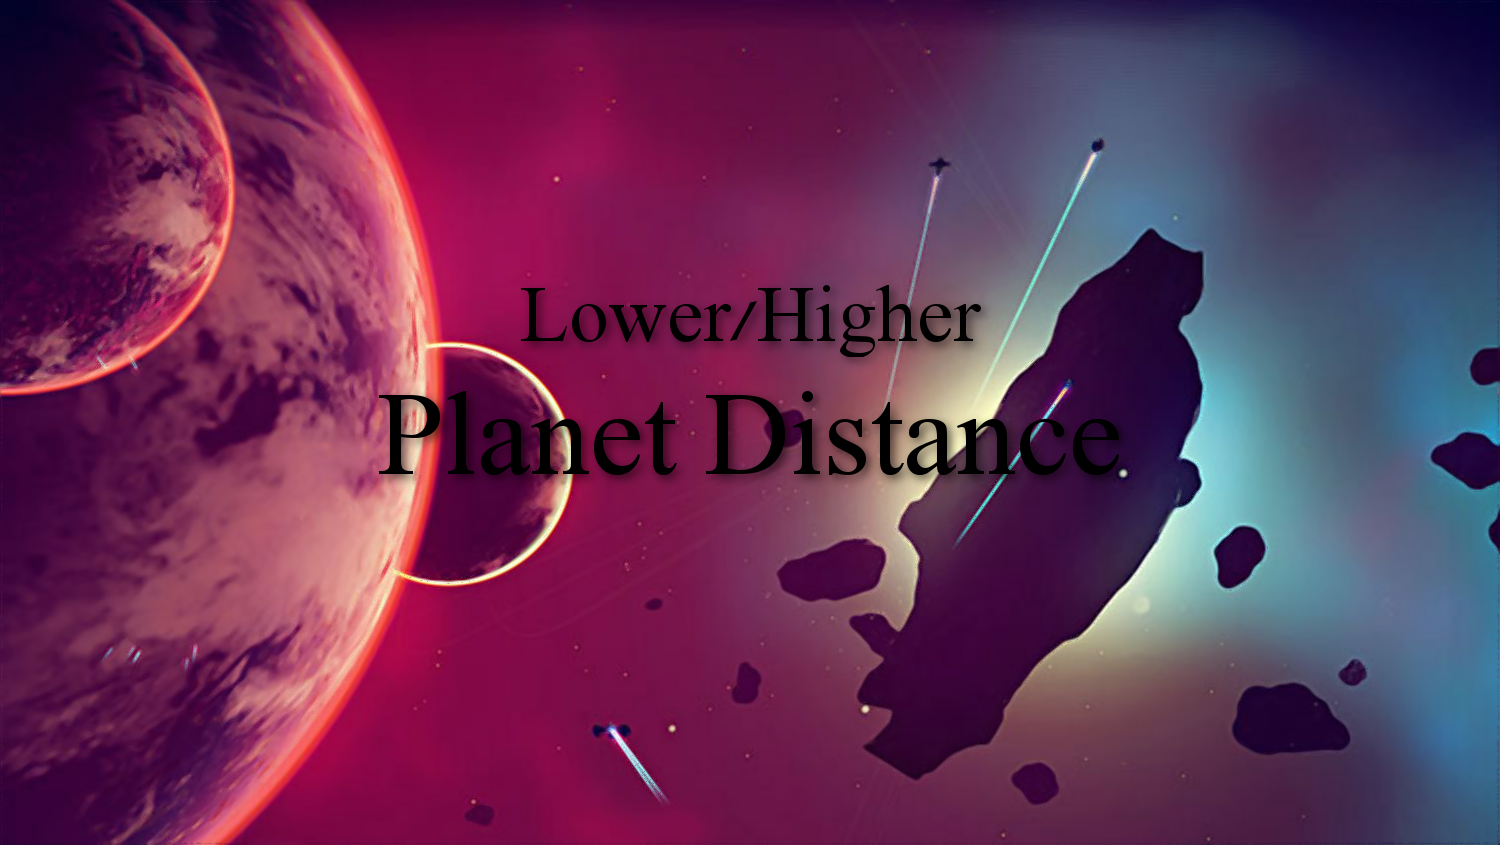 Higher/Lower Planet Spawn Distance